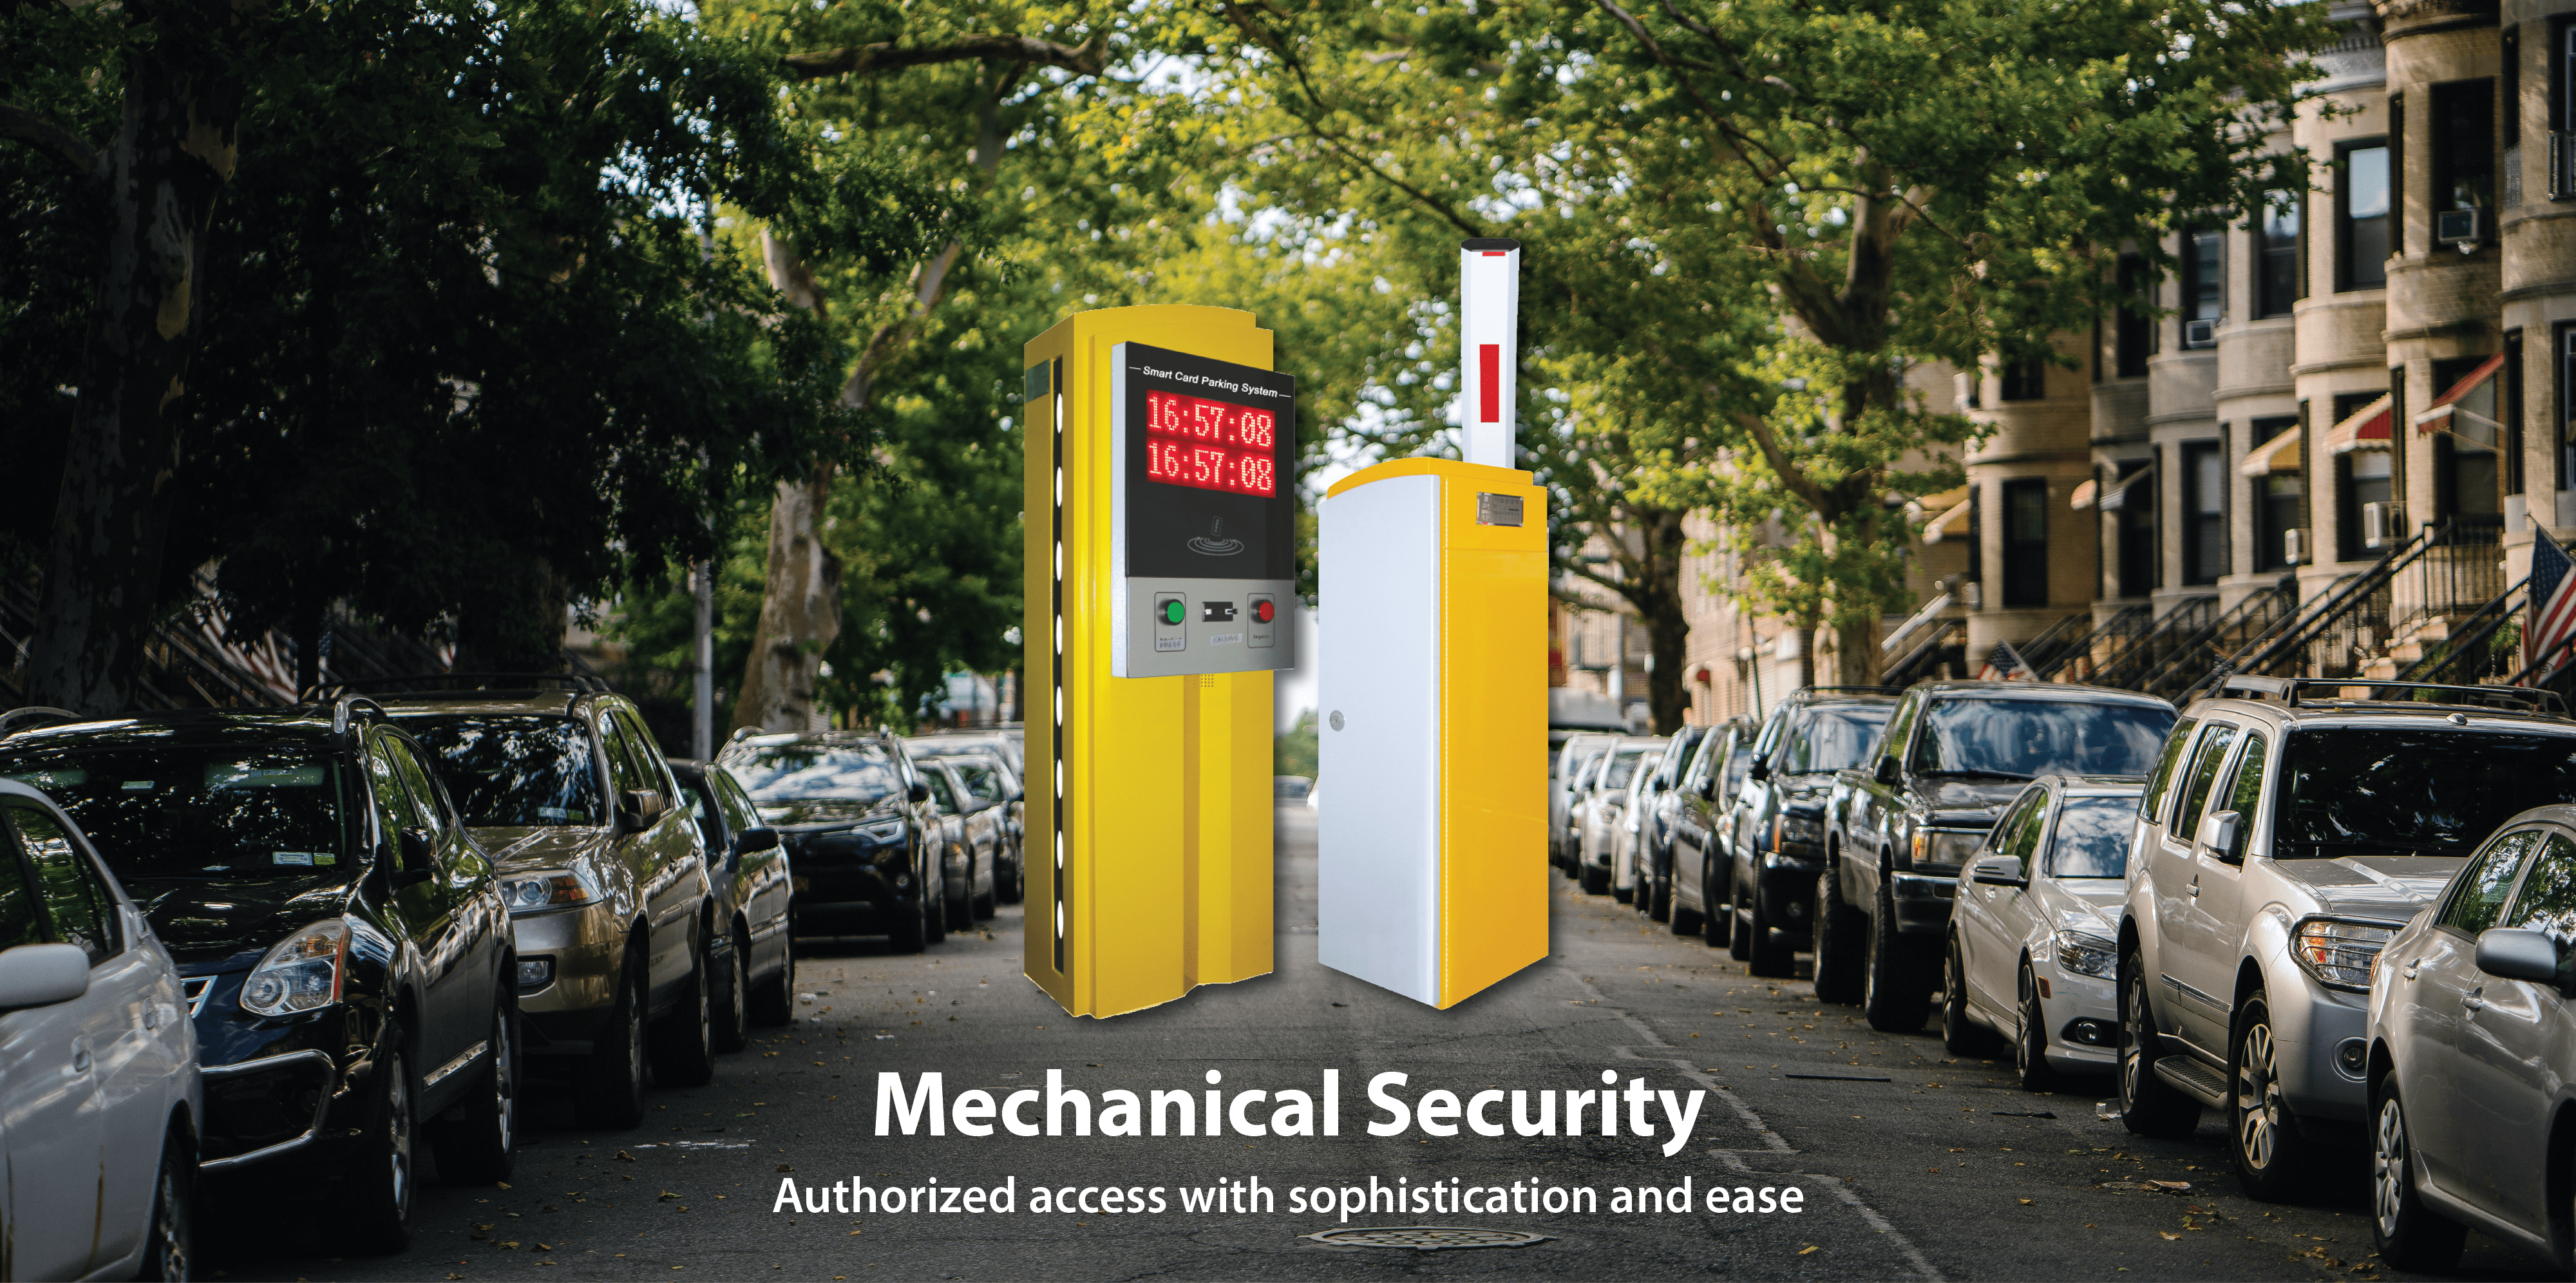 Mechanical Security